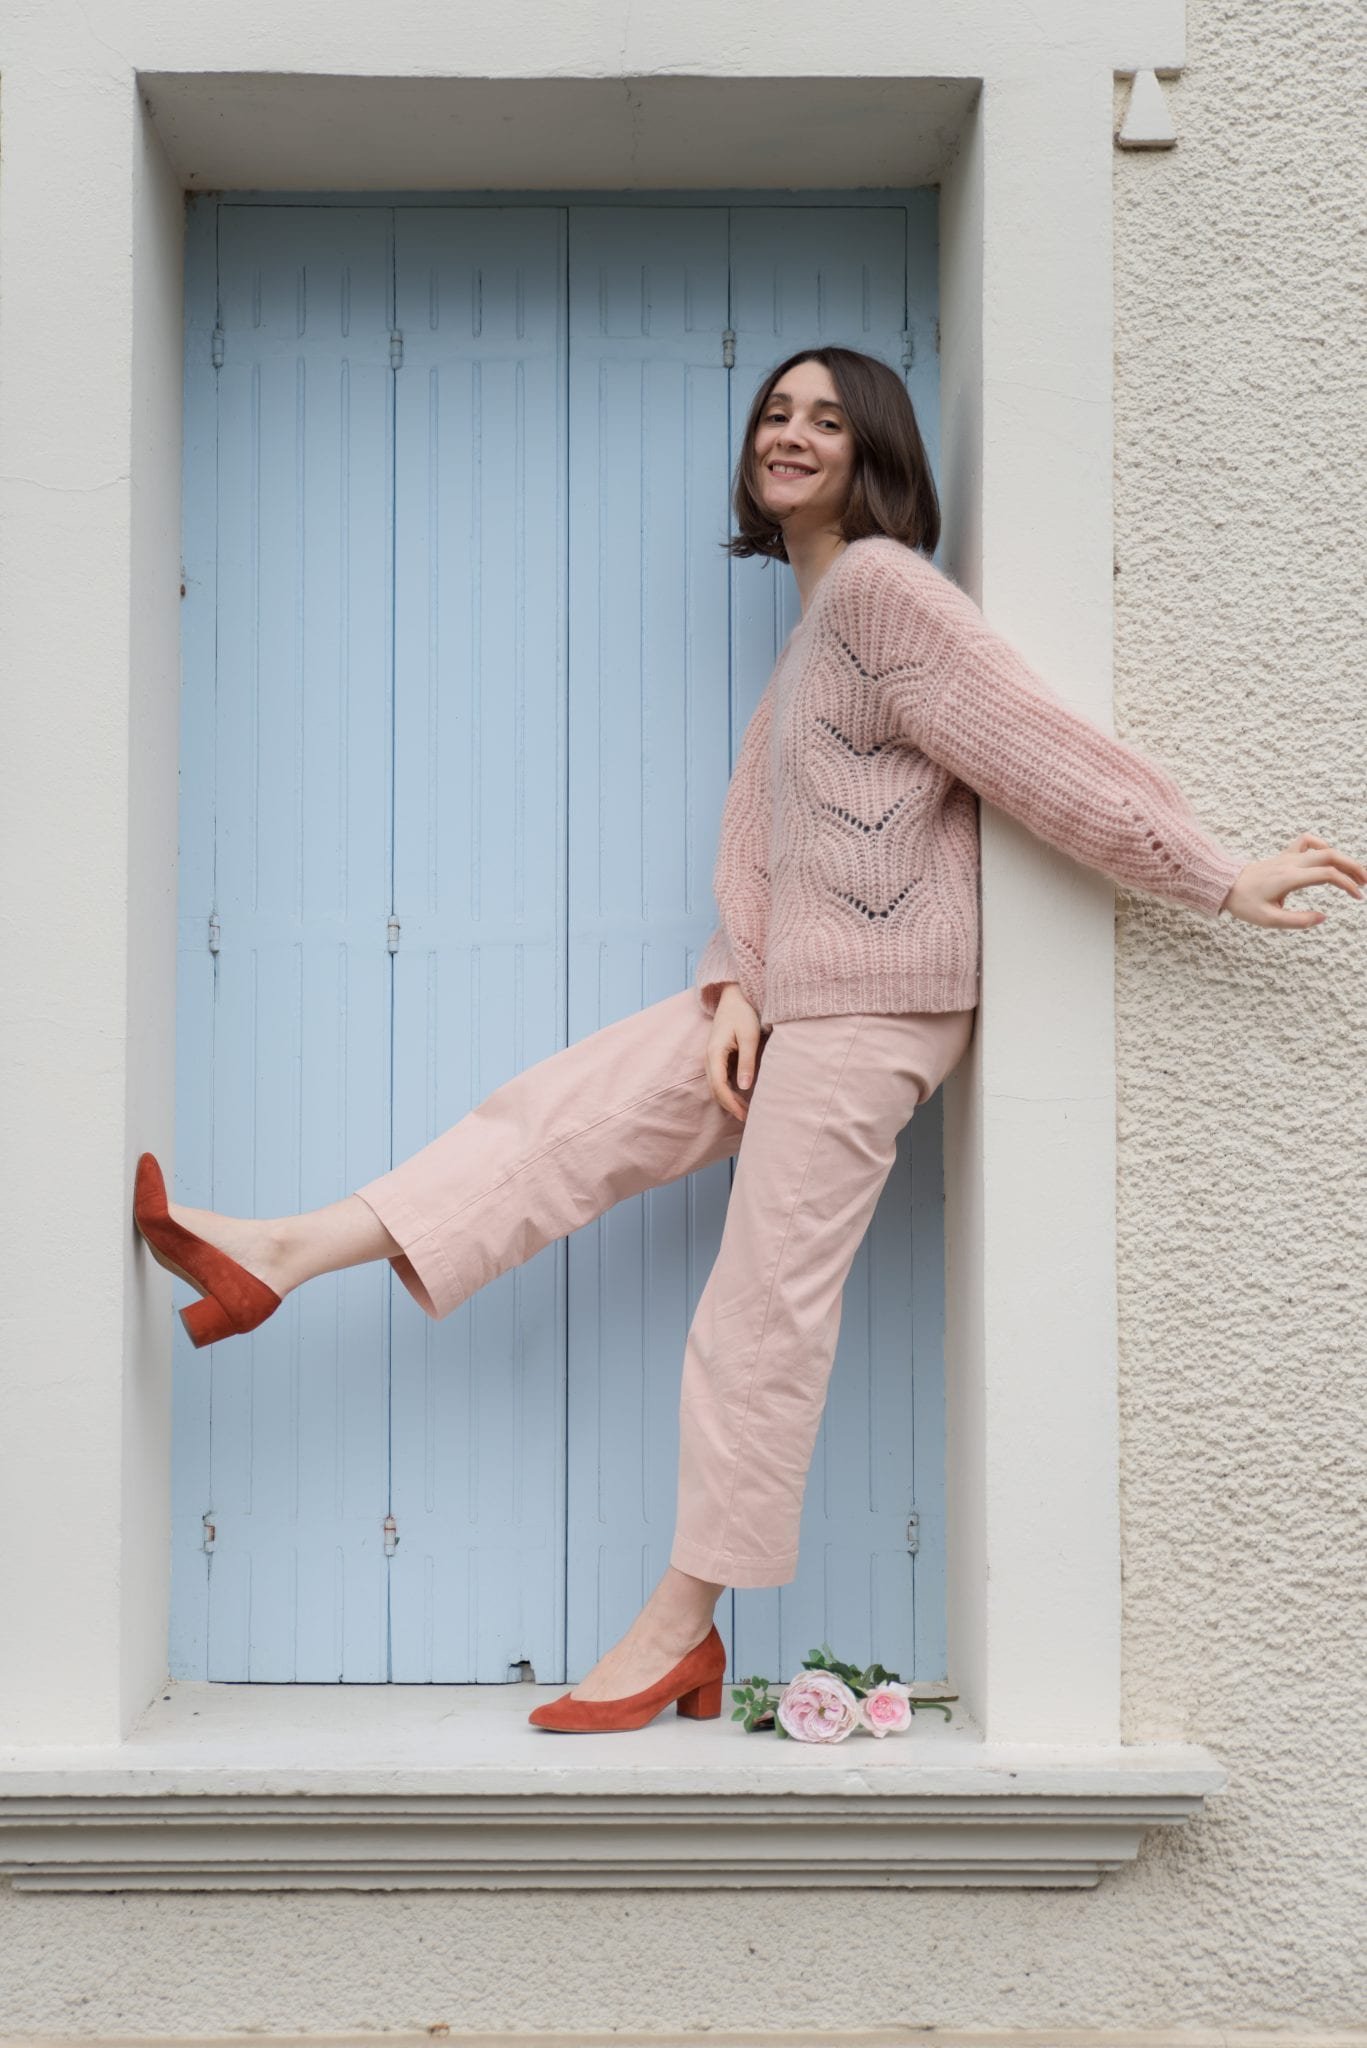 Maille Simone et Pantalon June Sezane, escarpins Des petits Hauts / Blog-mode-estelle-some-place-called-home